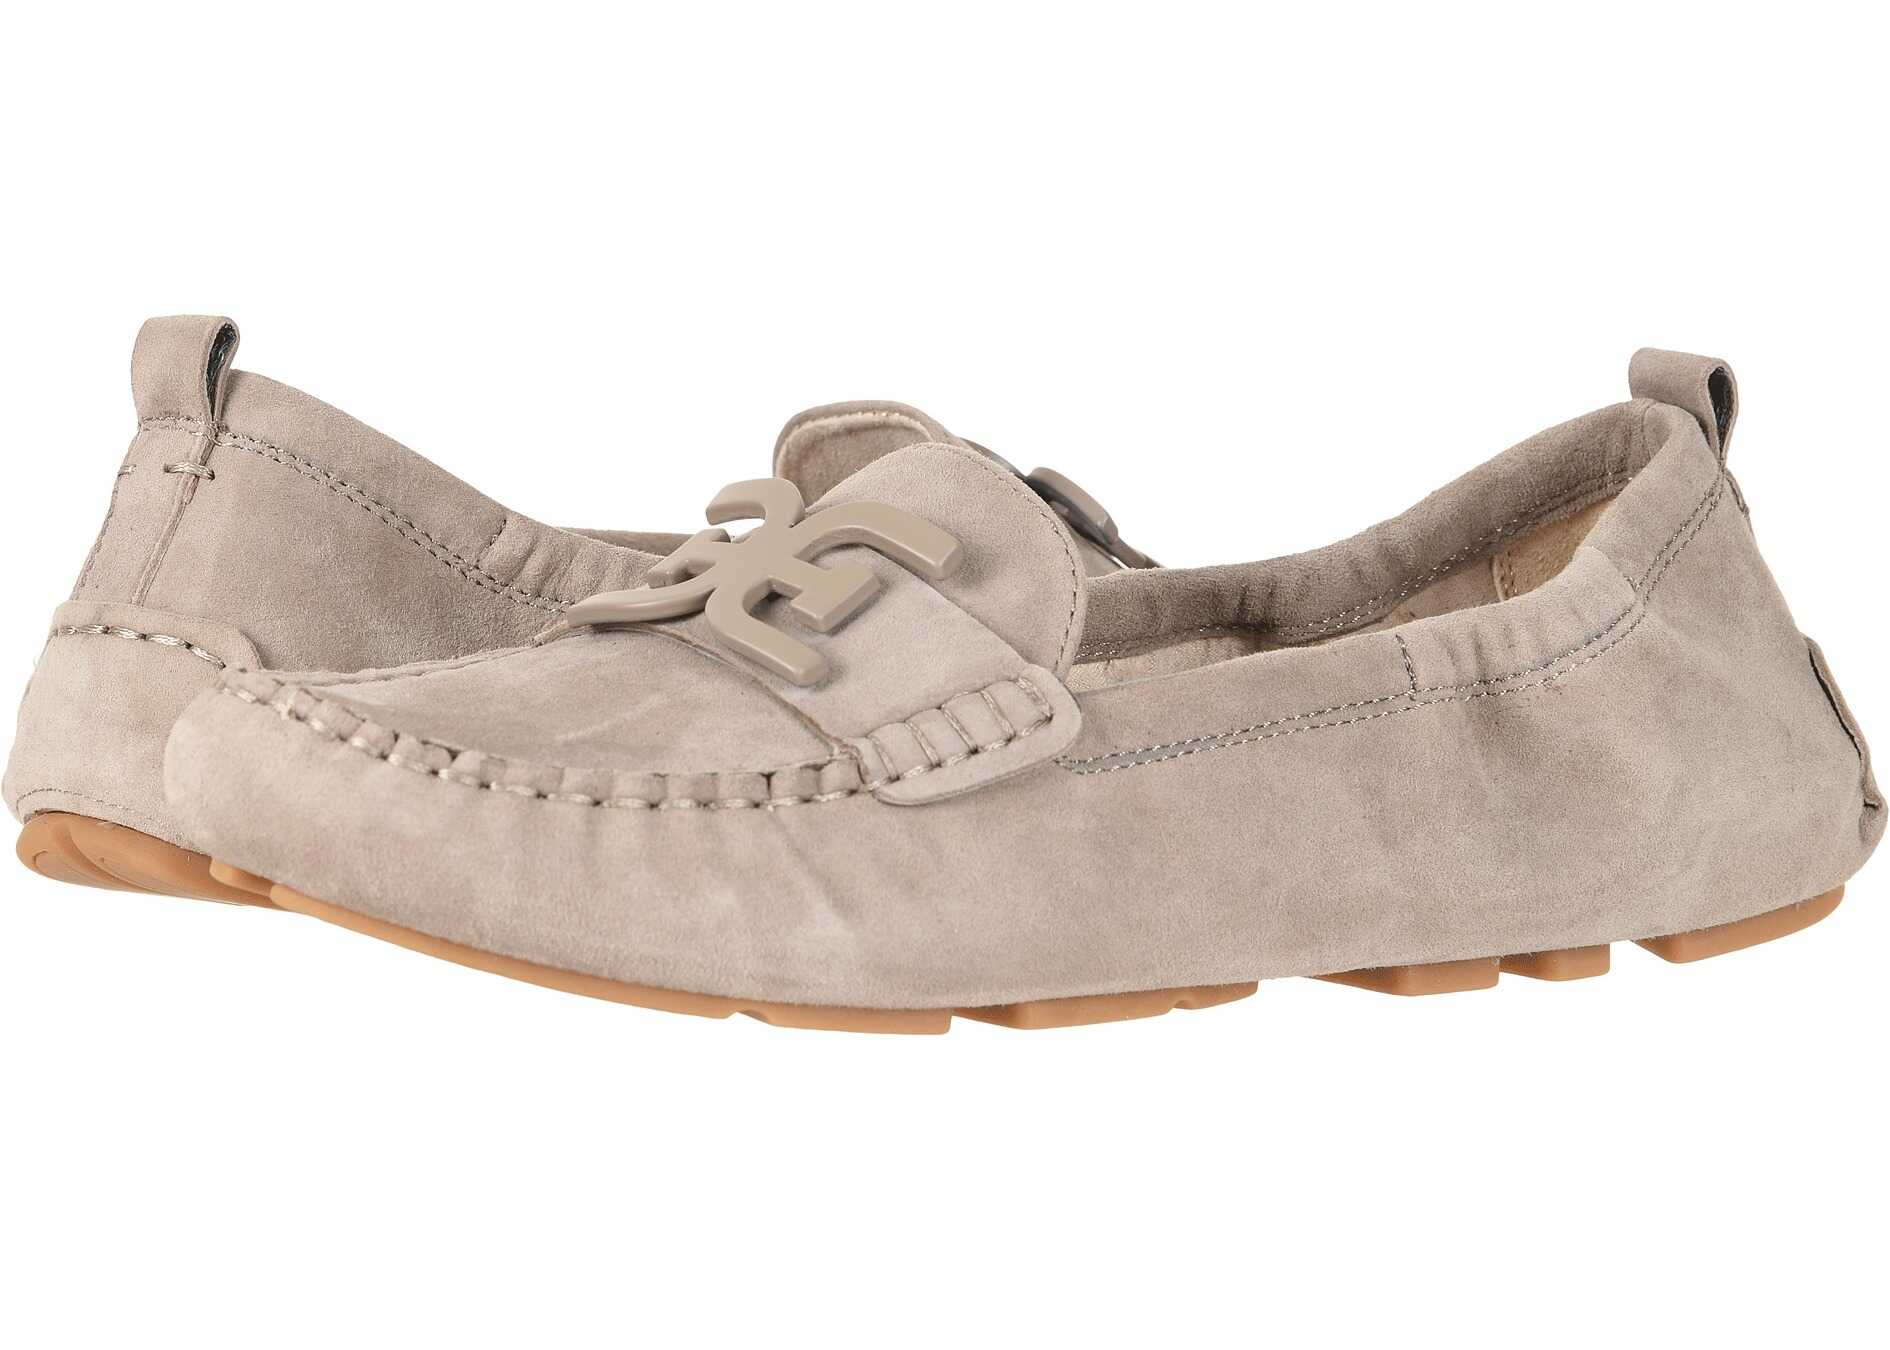 Sam Edelman Farrell Putty Suede Mulberry Pink Kid Suede Leather